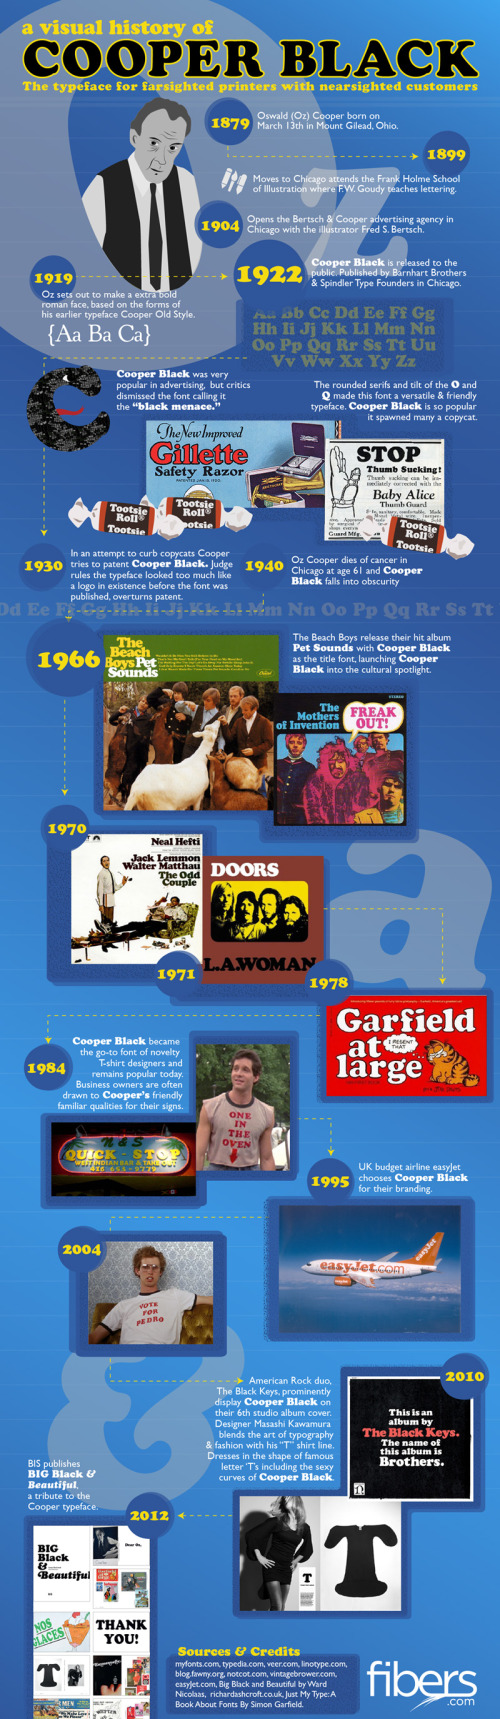 Visual History of Cooper Black infographic